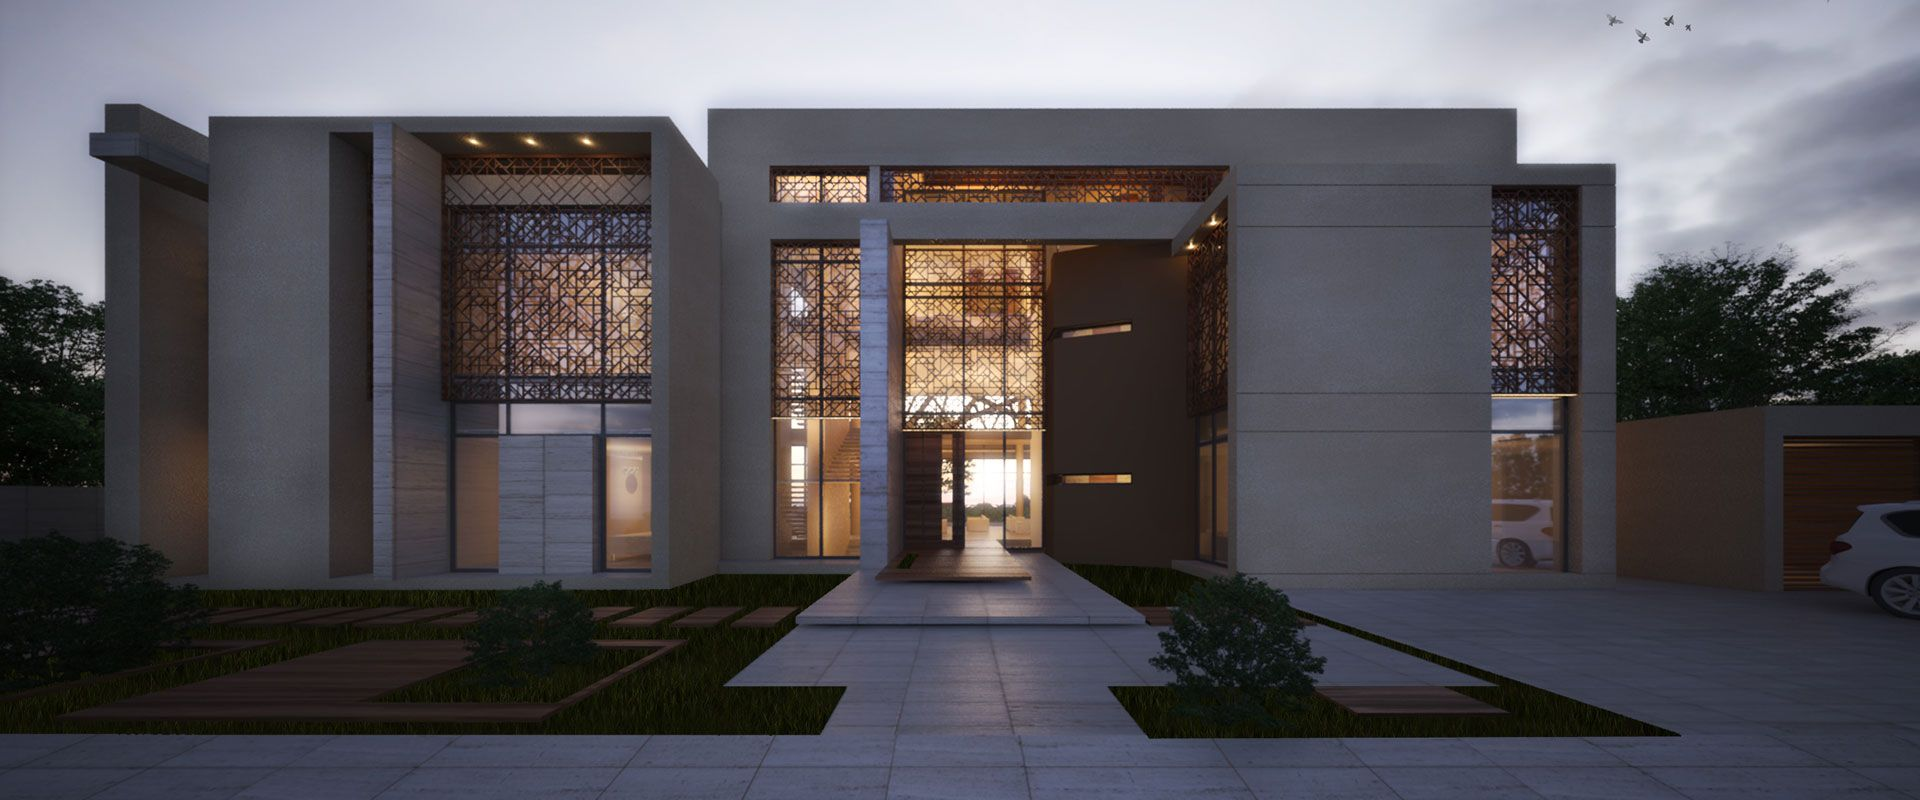 Dubai villas modern google search arabian architecture for Modern home decor dubai